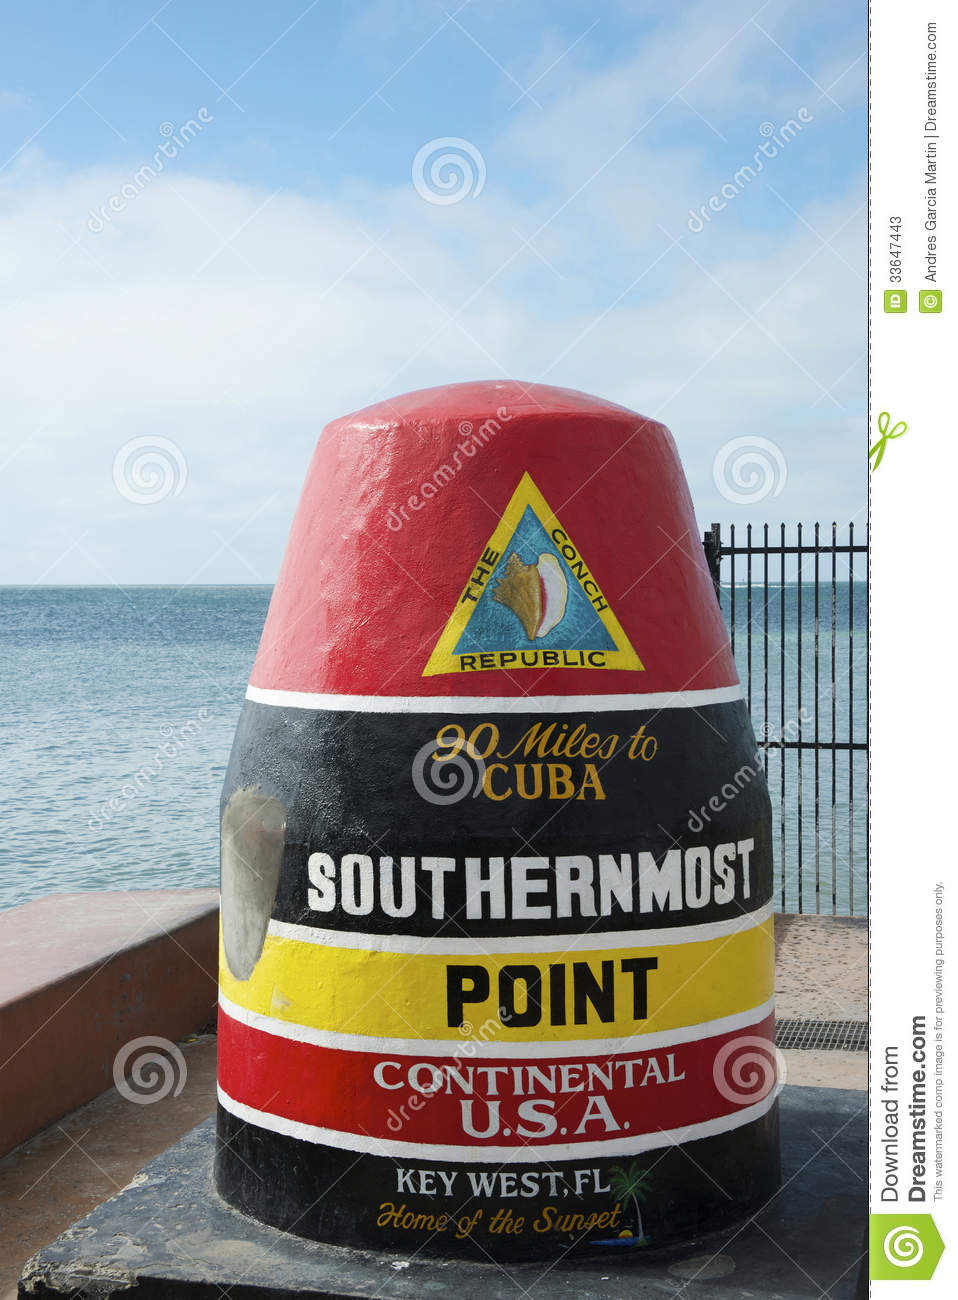 USA Southernmost Point Monument And Key West Tourist Attraction.